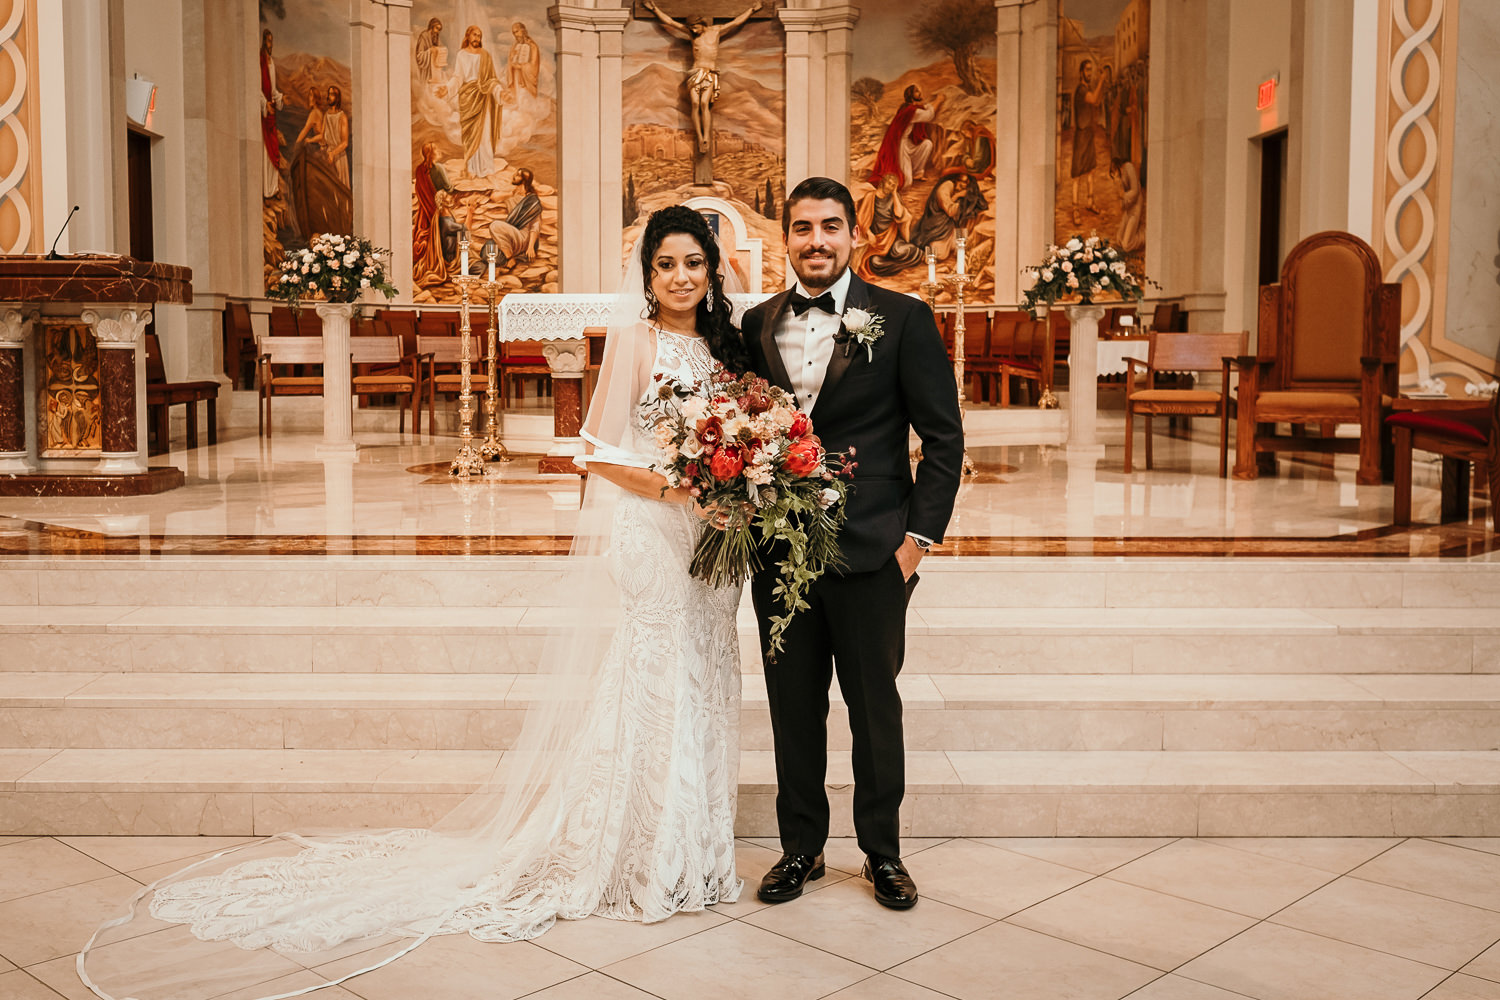 newlyweds posing in front of church altar